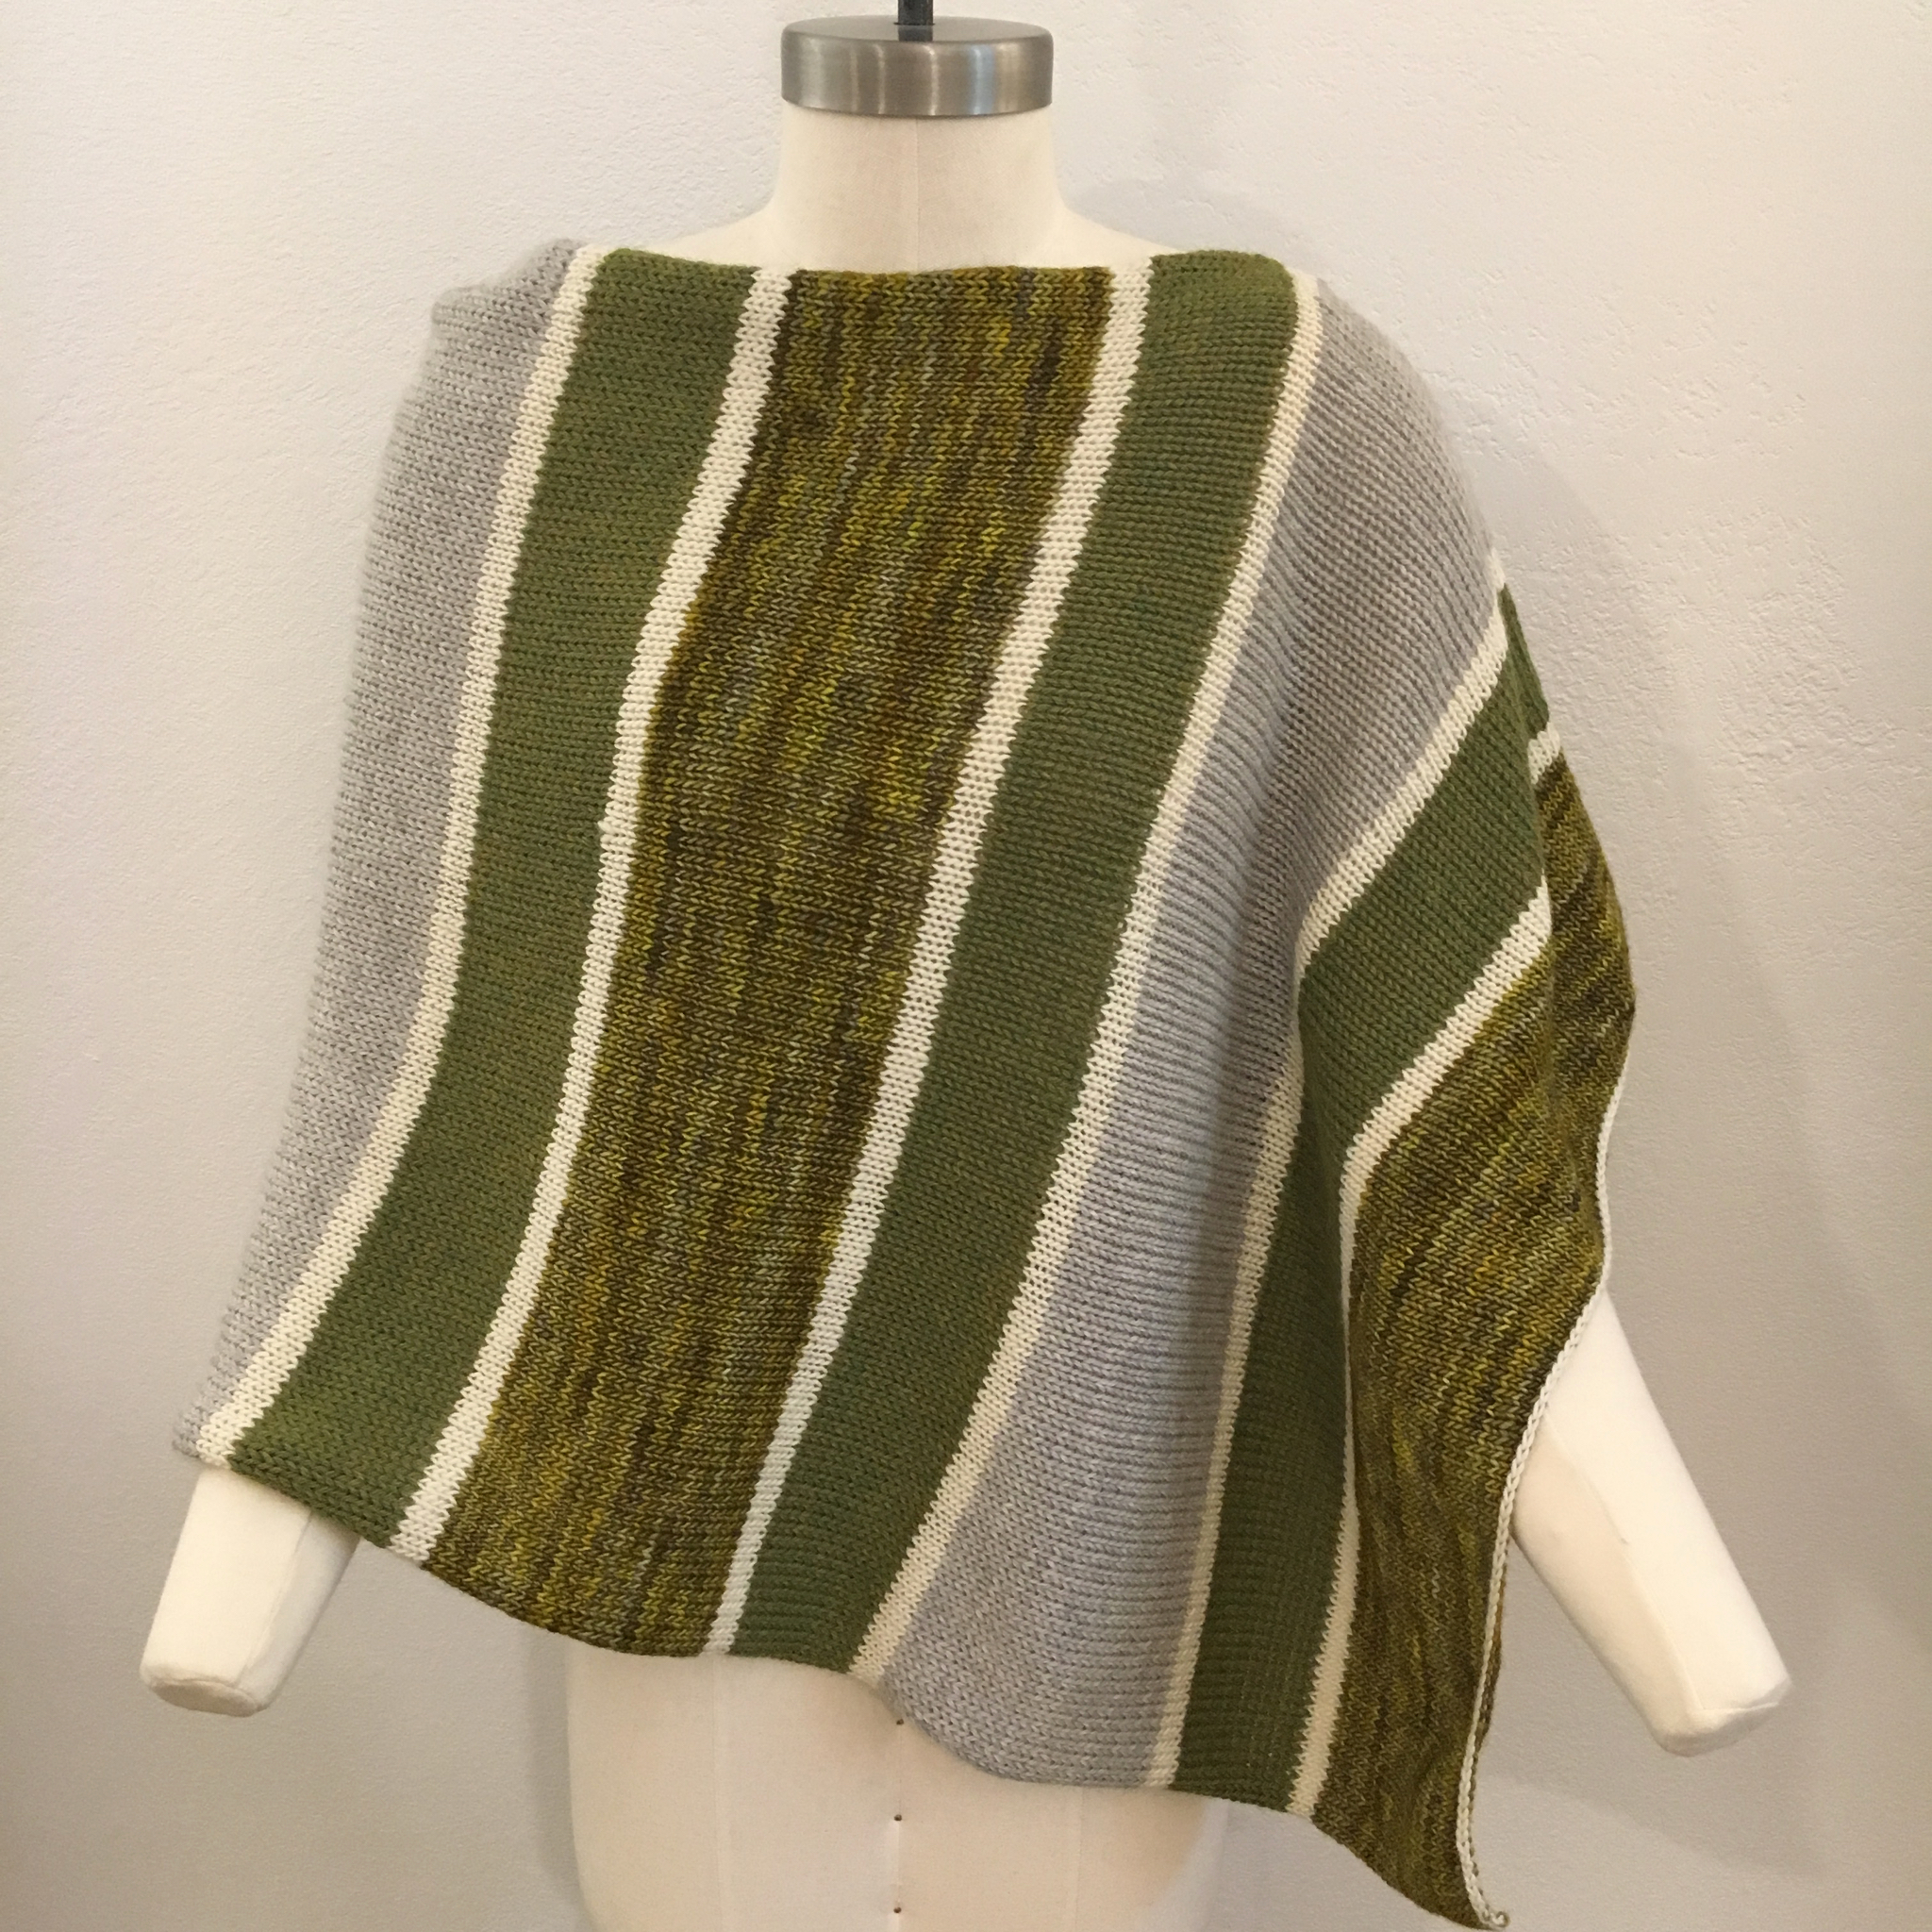 Signature Poncho in Lily Pad Colorway, Lighter Weight